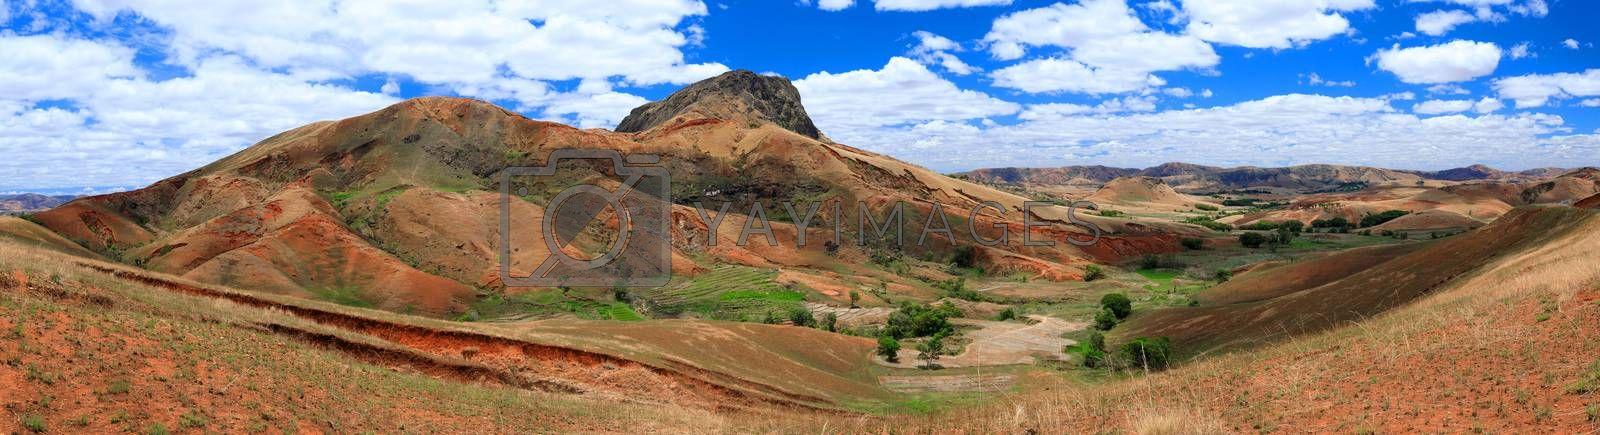 Madagascar highland countryside landscape. Deforestation in Madagascar creates agricultural or pastoral land but can also result ecology problem with soil and water. Madagascar Mahajanga Province